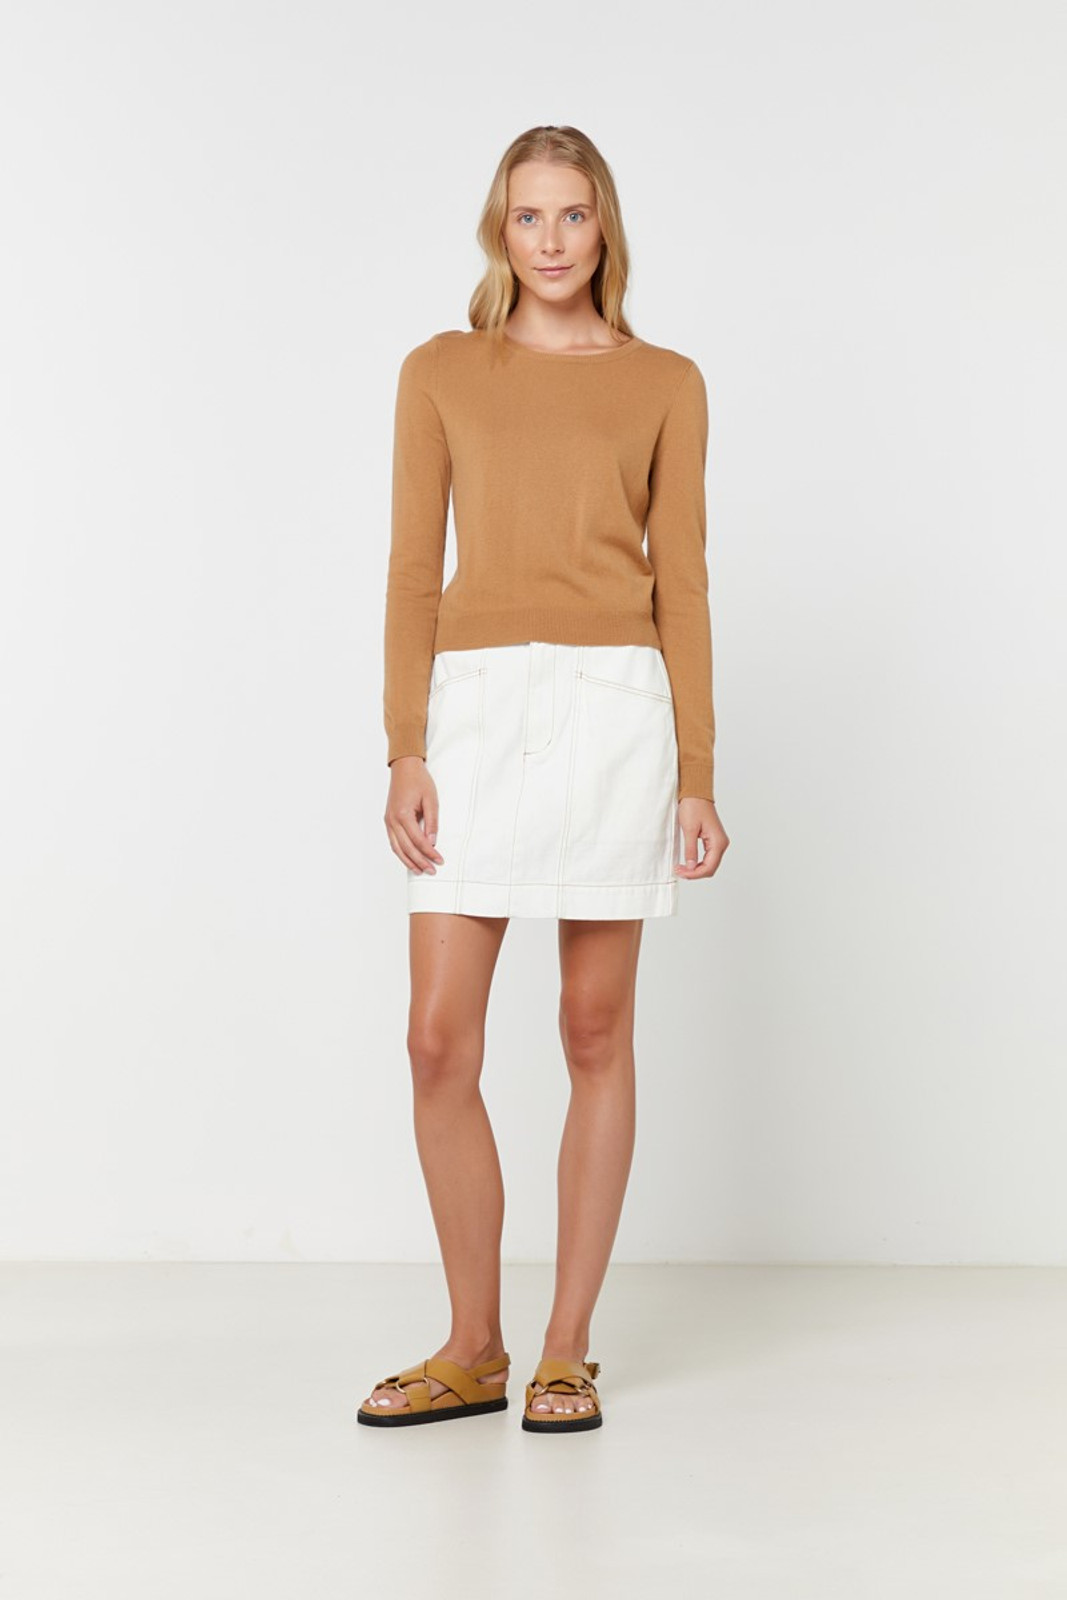 Elka Collective Gale Knit Neutrals  2